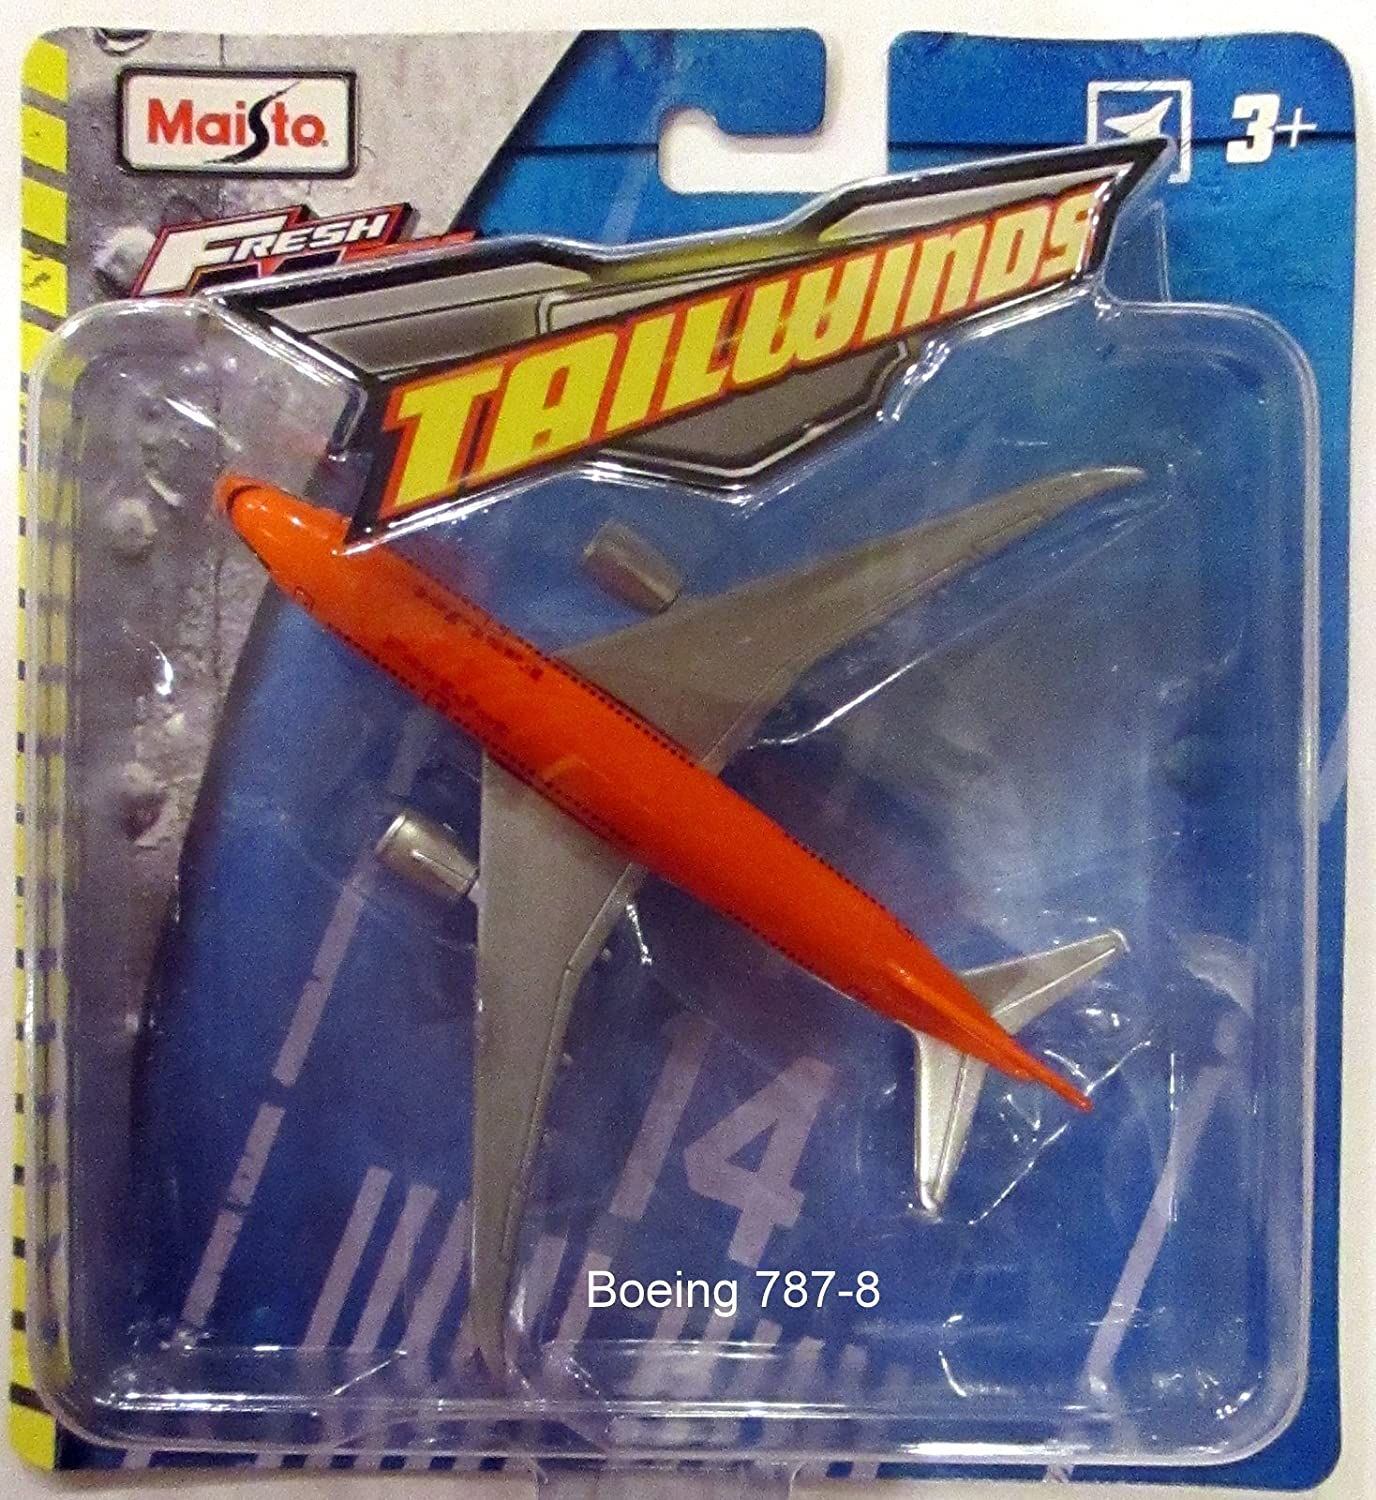 Tailwinds Maisto Boeing 777-200 1:87 Scale Die Cast Airplane Maisto International